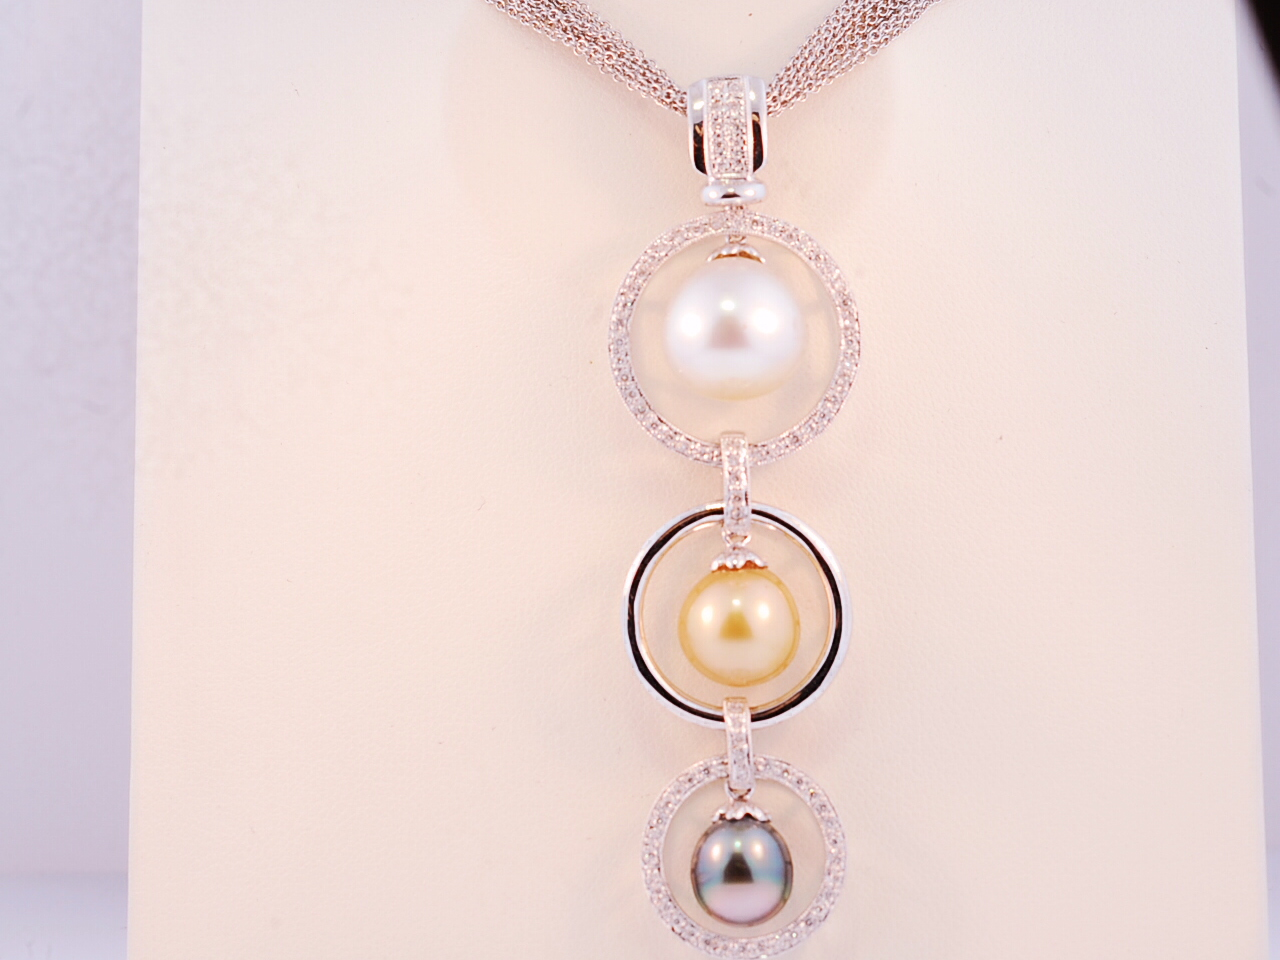 A pearl necklace 51